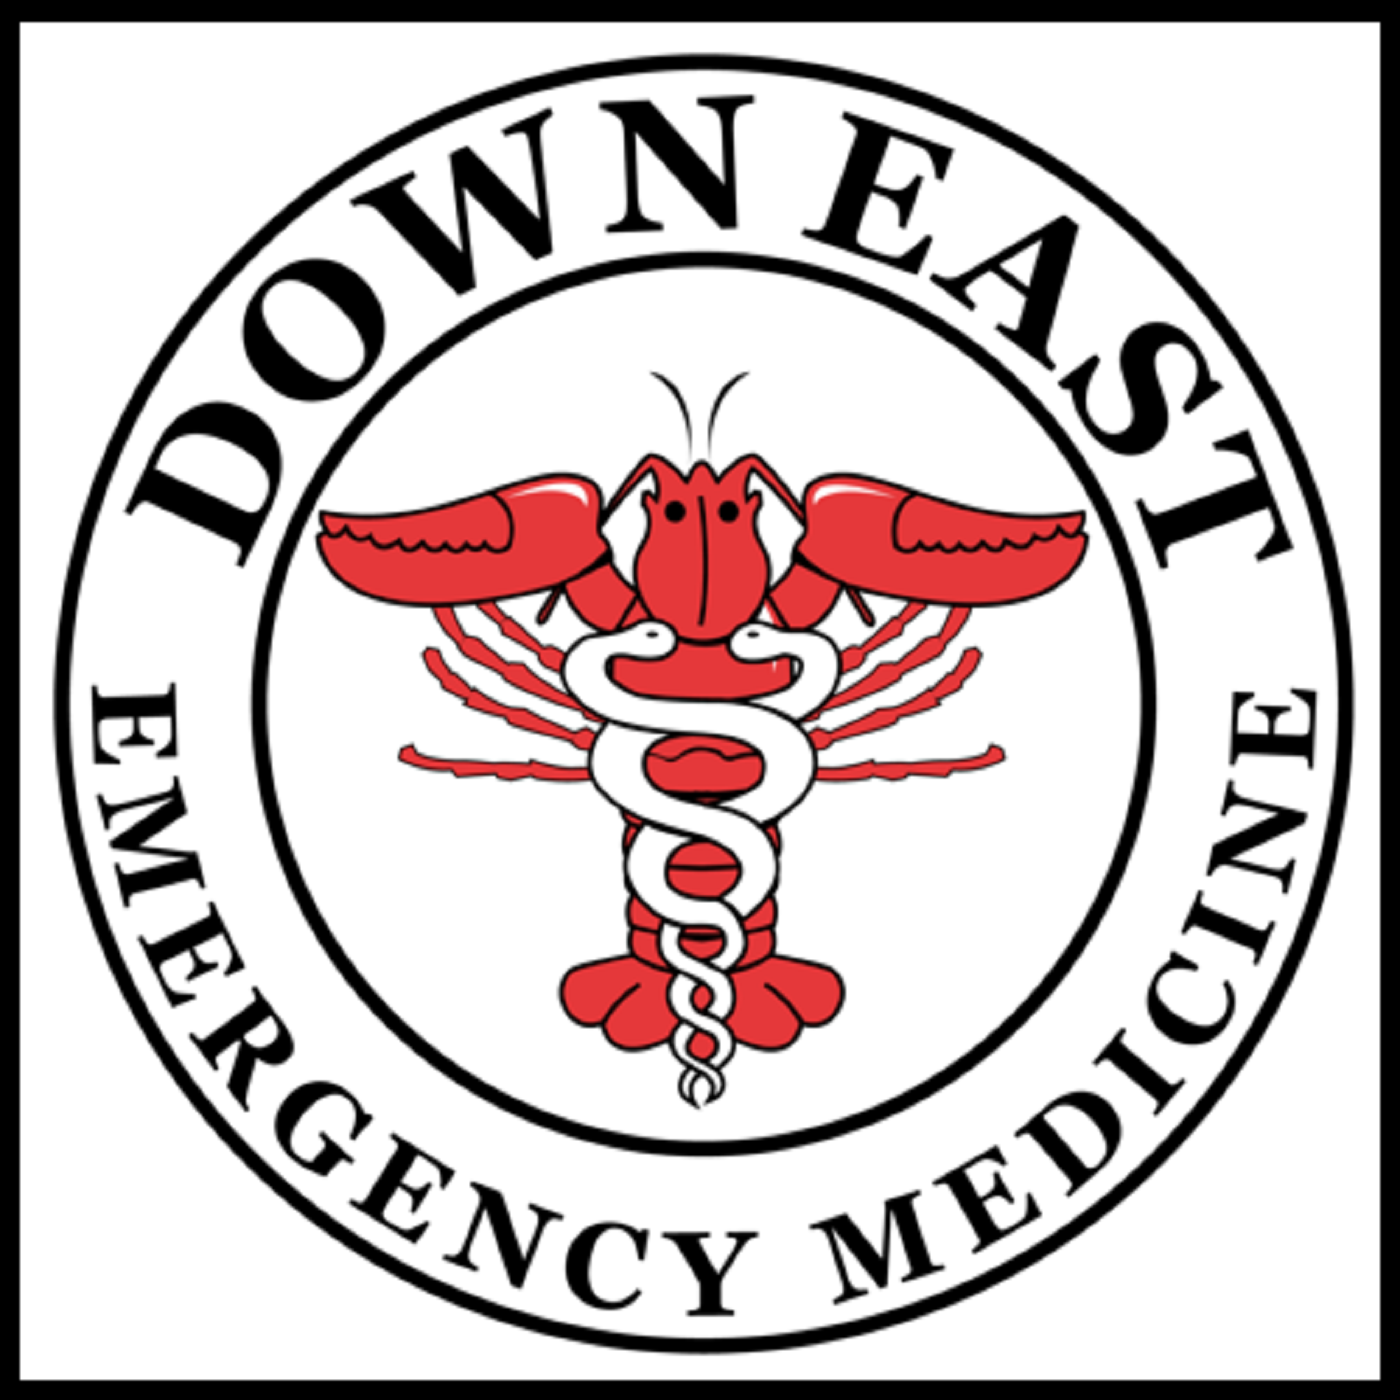 The Downeast EM Podcast